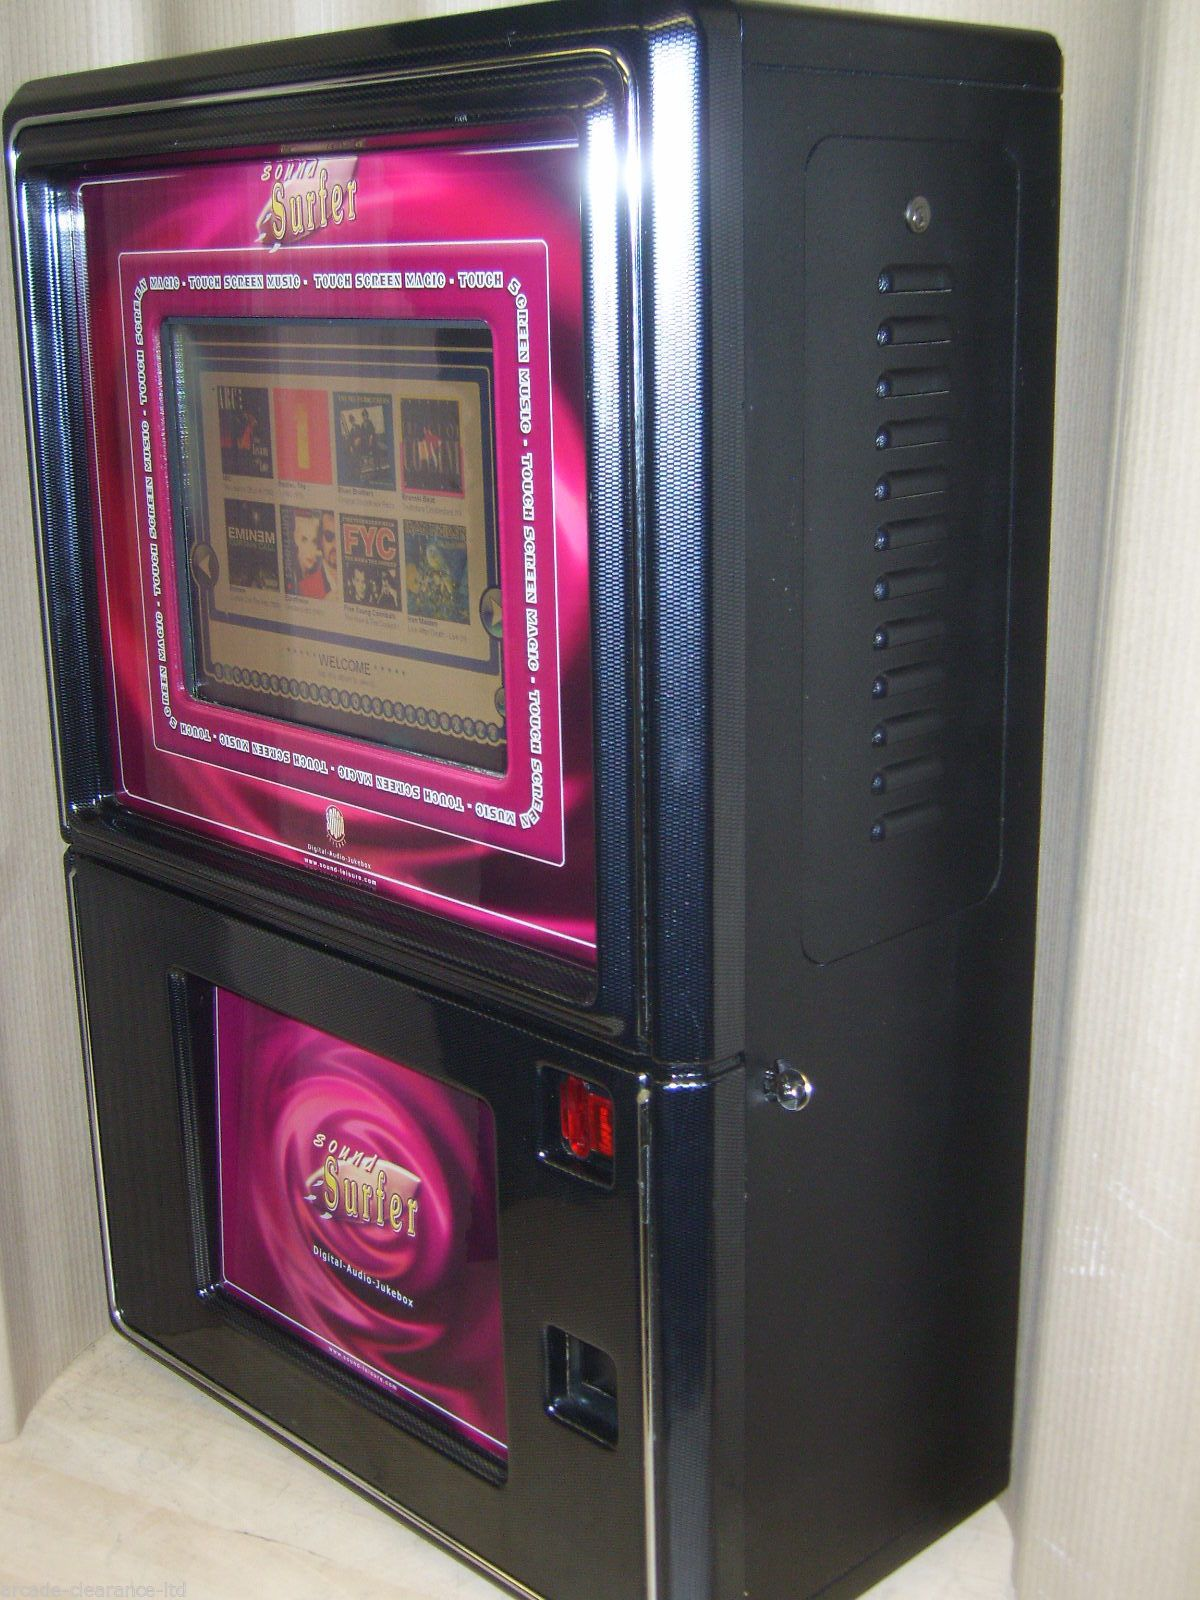 Mp3: Wall Mounted Touchscreen Digital MP3 Jukebox